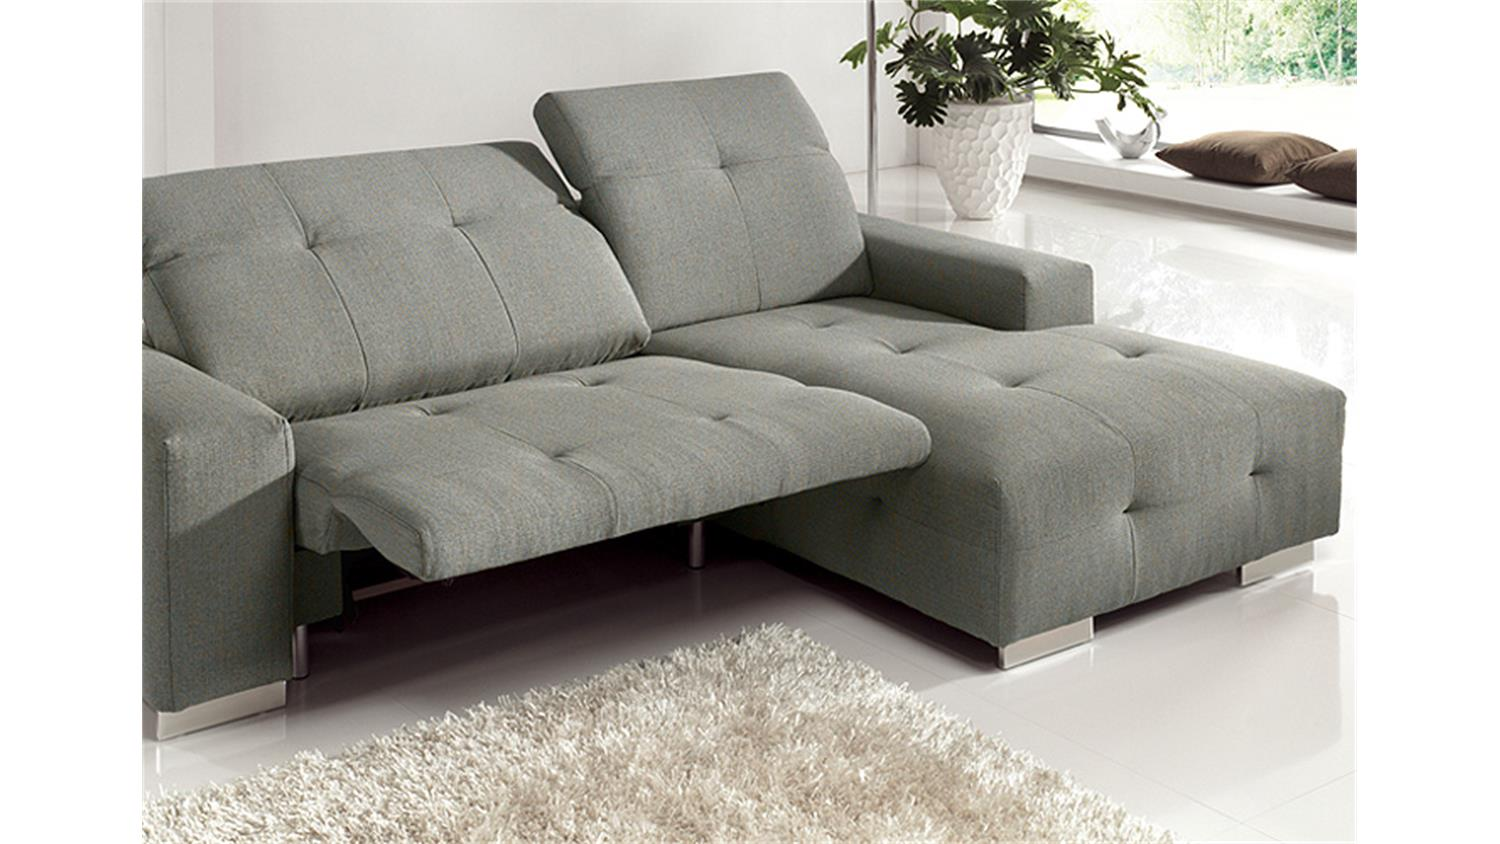 ecksofa mit relaxfunktion ecksofa perira i mit. Black Bedroom Furniture Sets. Home Design Ideas